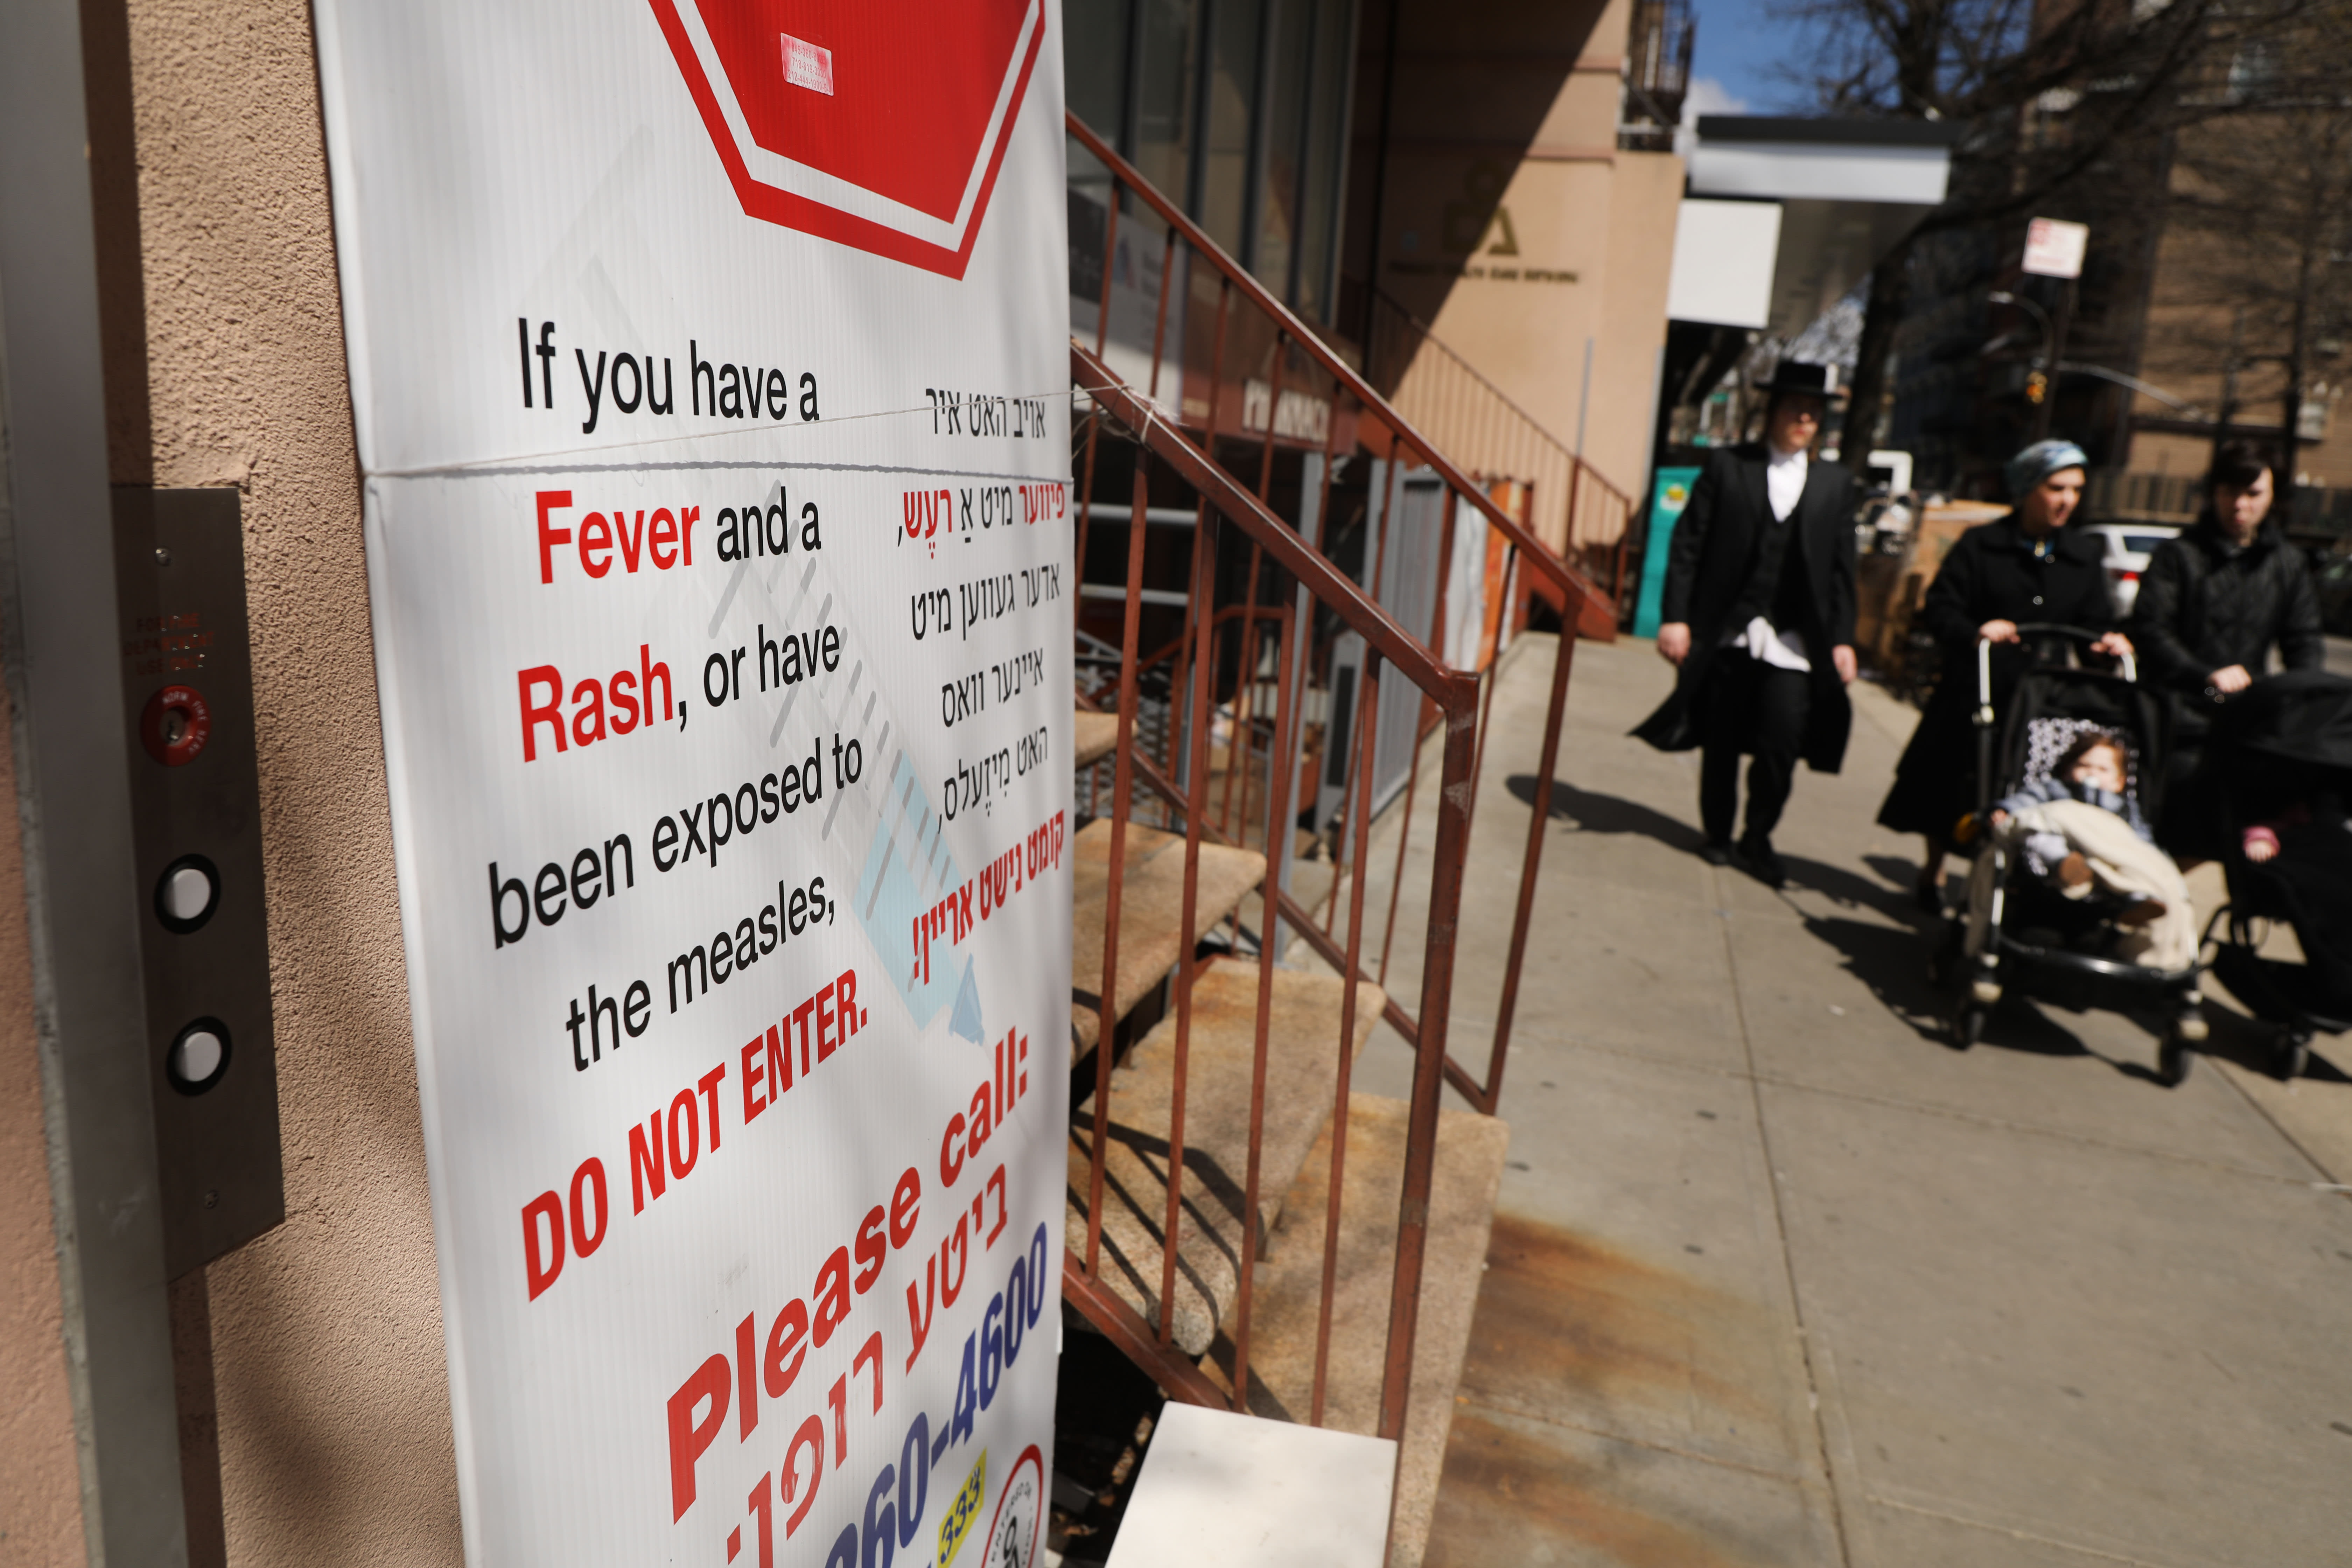 Measles cases climb to 880 in US, with most new cases in New York